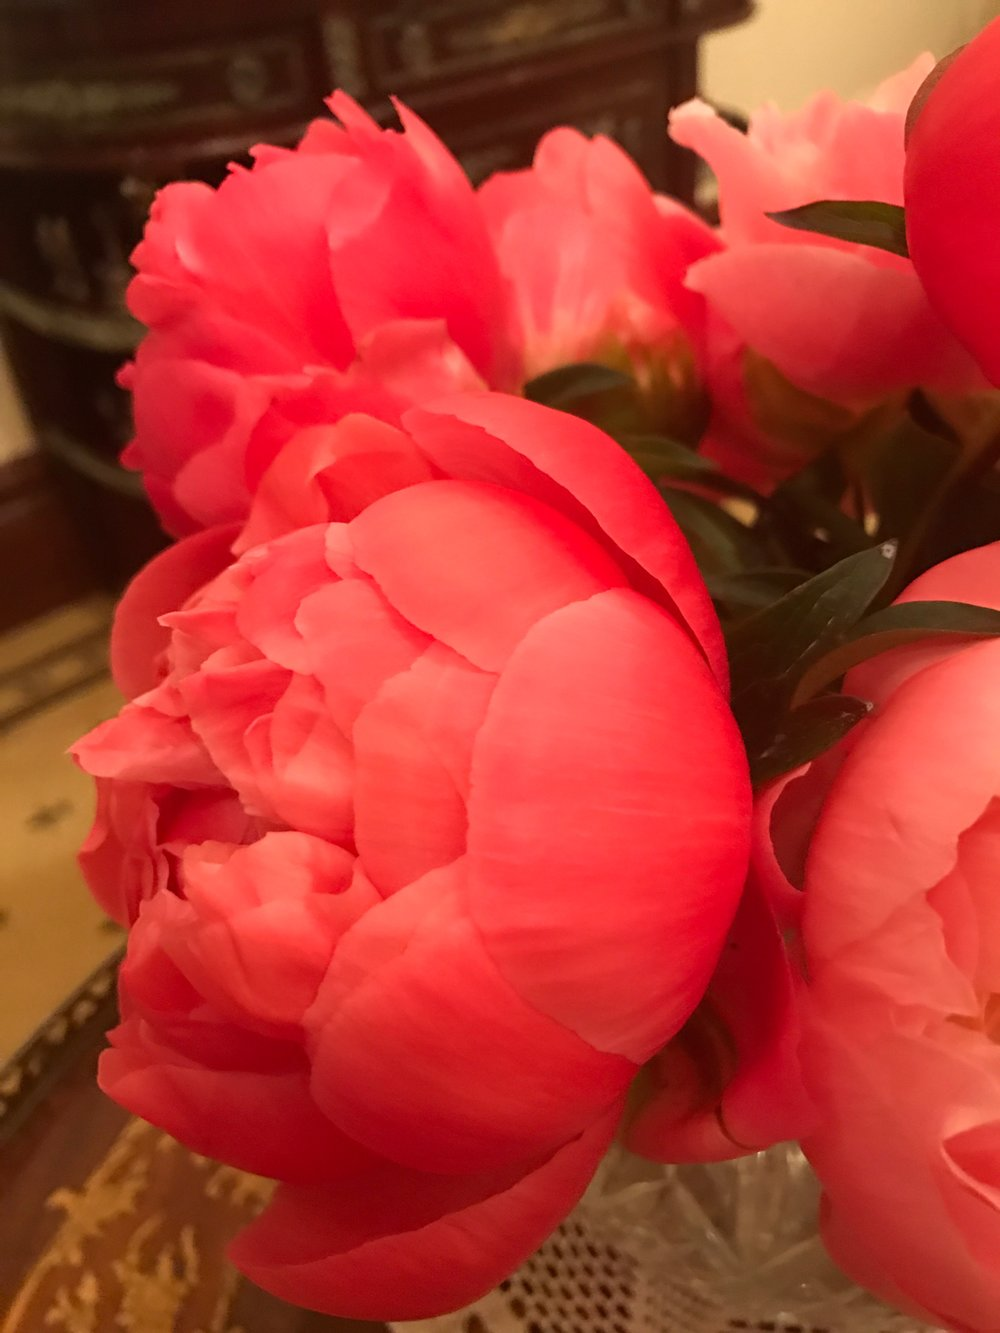 SHOP - Buy All Things Peony